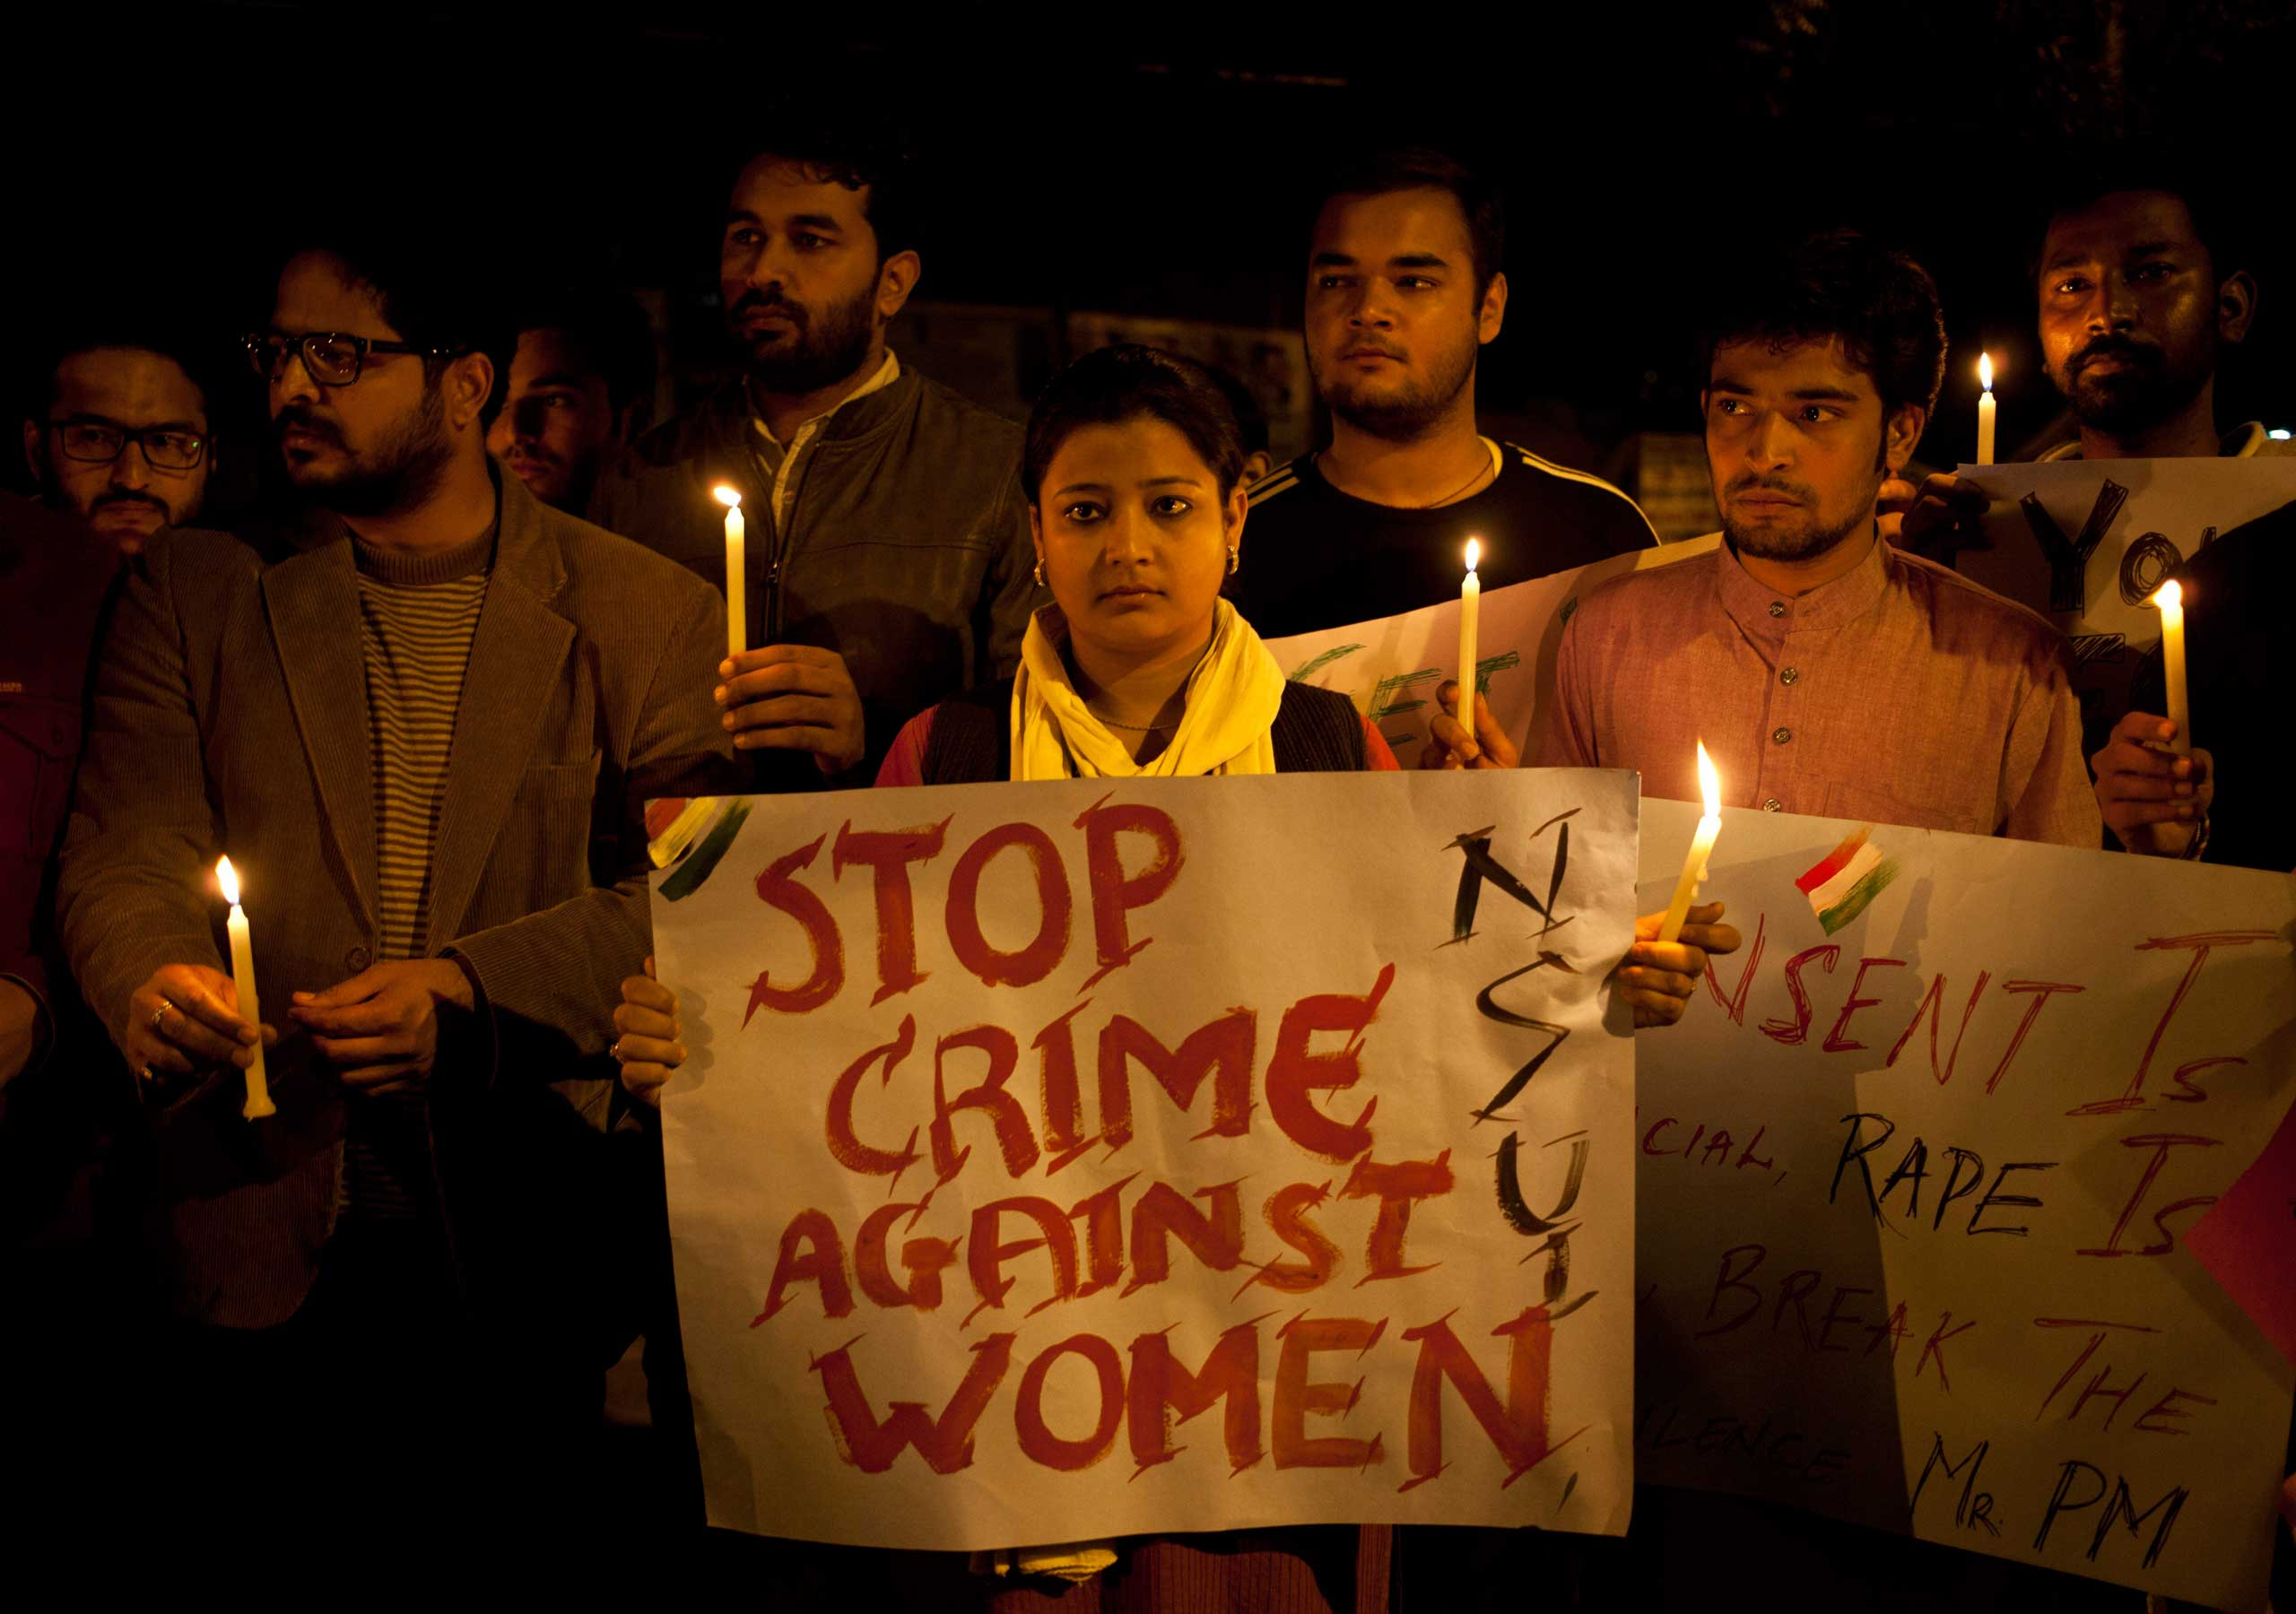 Indian youth hold candles during a protest against sexual violence in New Delhi, India on Feb. 9, 2015.